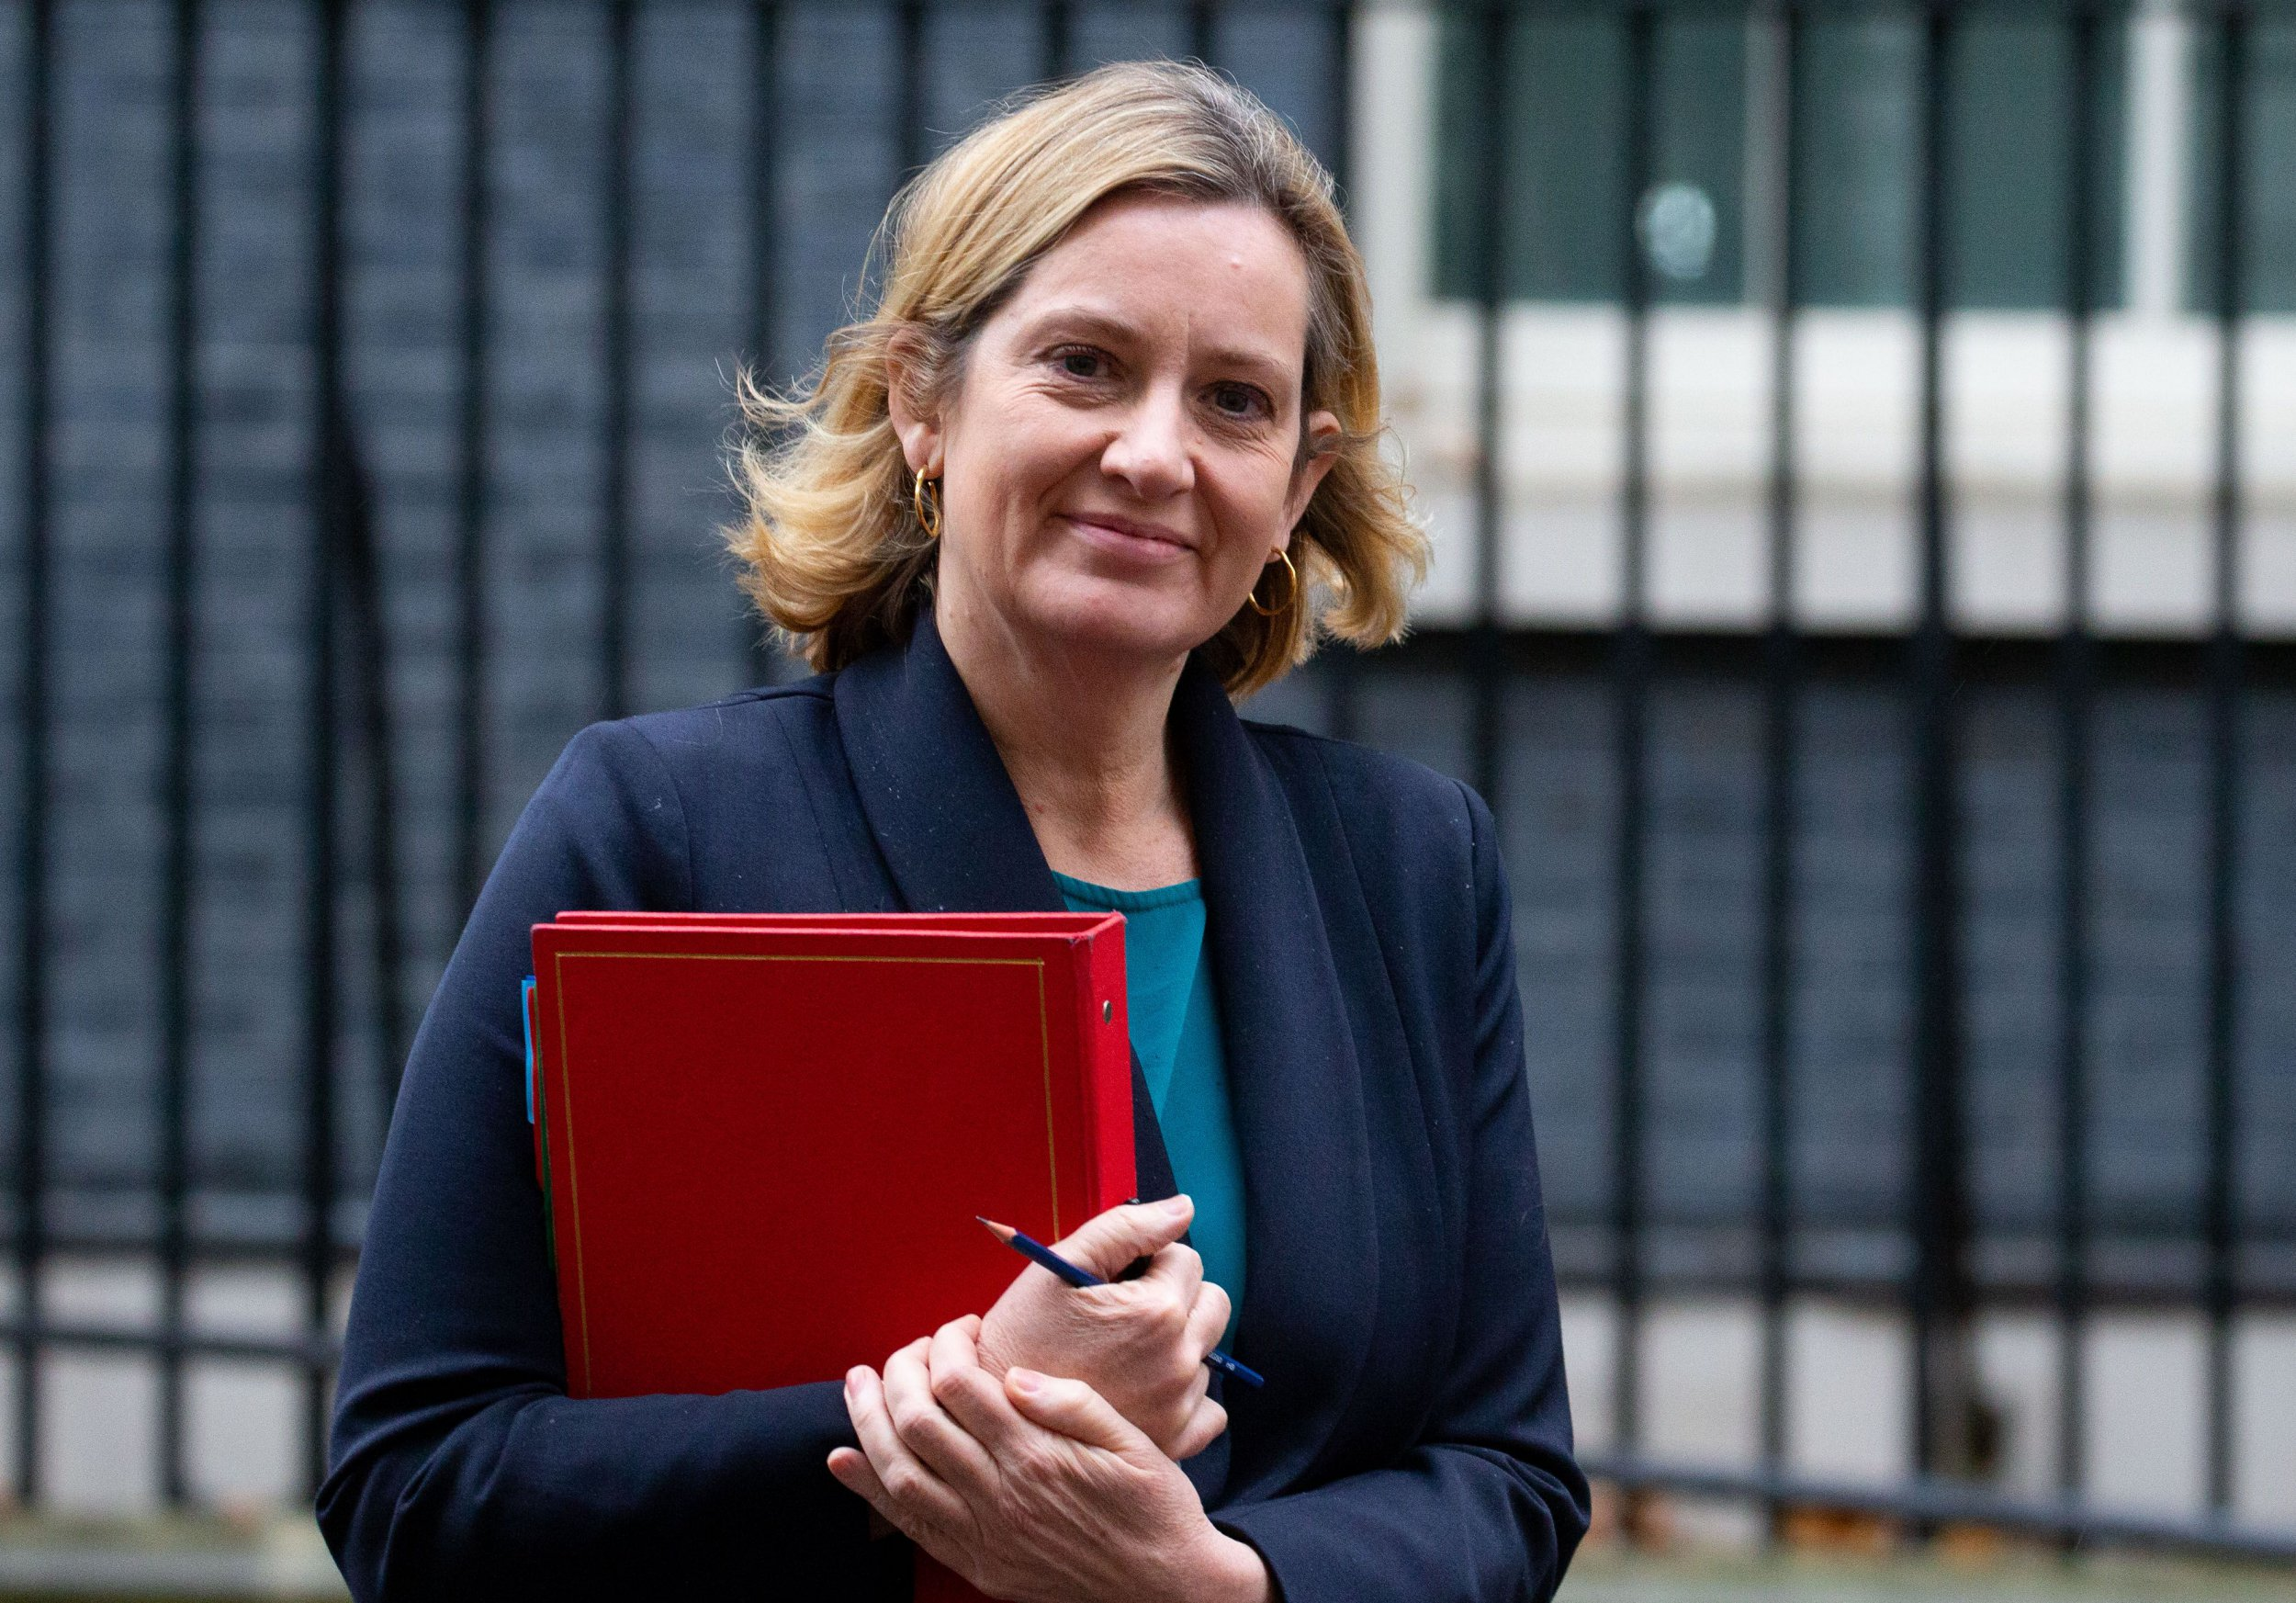 Mandatory Credit: Photo by Mark Thomas/REX/Shutterstock (9986890ba) Amber Rudd, Secretary of State for Work and Pensions, leaves the Cabinet meeting. Cabinet meeting, London, UK-20 Nov 2018 Prime Minister, Theresa May, is trying to finalise her Brexit plans. Amber Rudd was appointed back into the Cabinet following the resignation of Esther McVey.